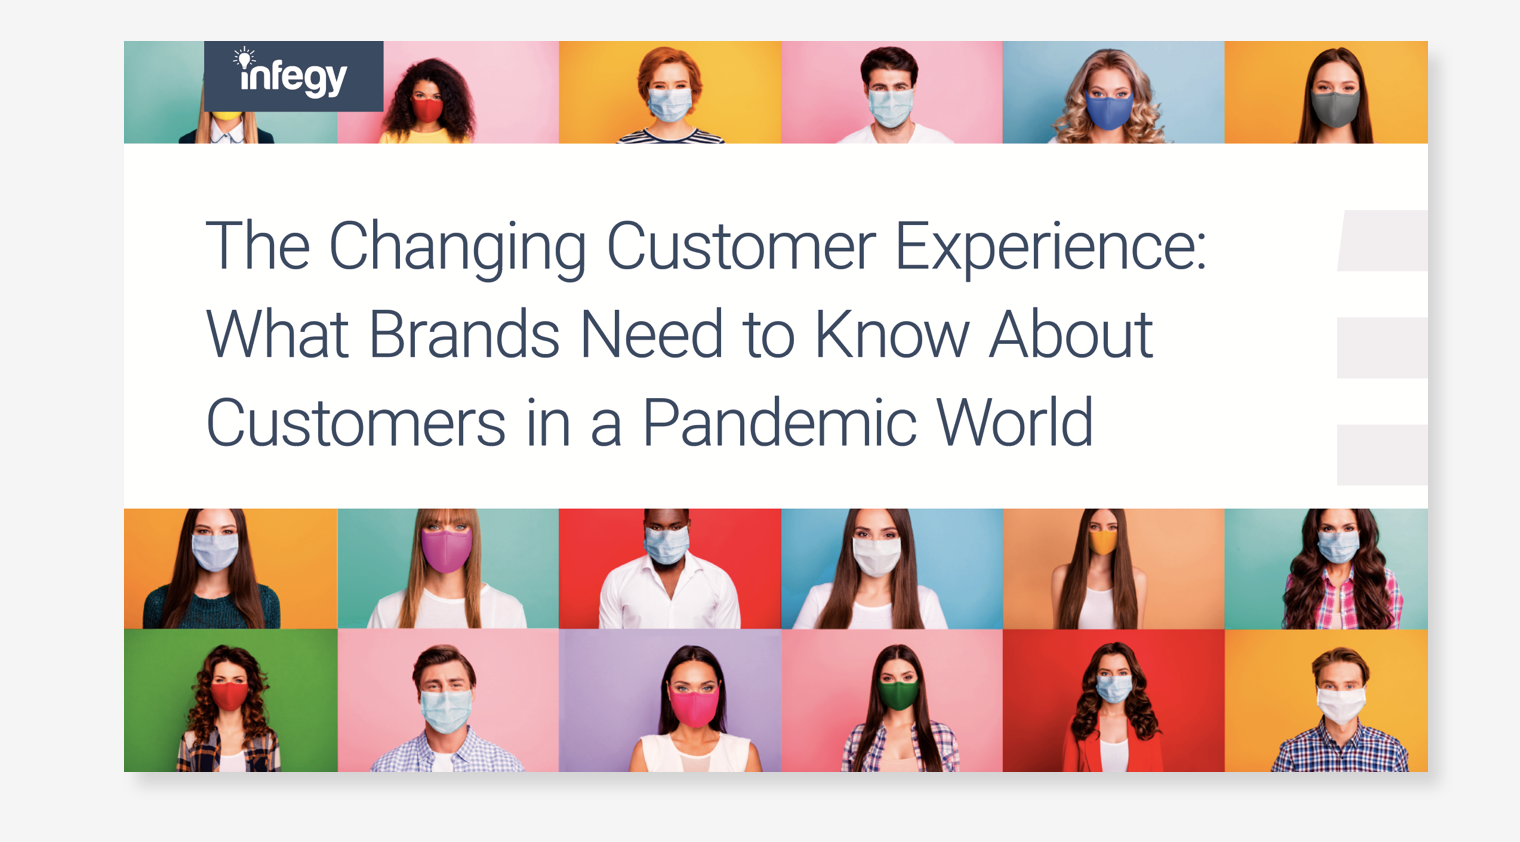 Consumer Experiences Report during COVID-19 Pandemic for brands